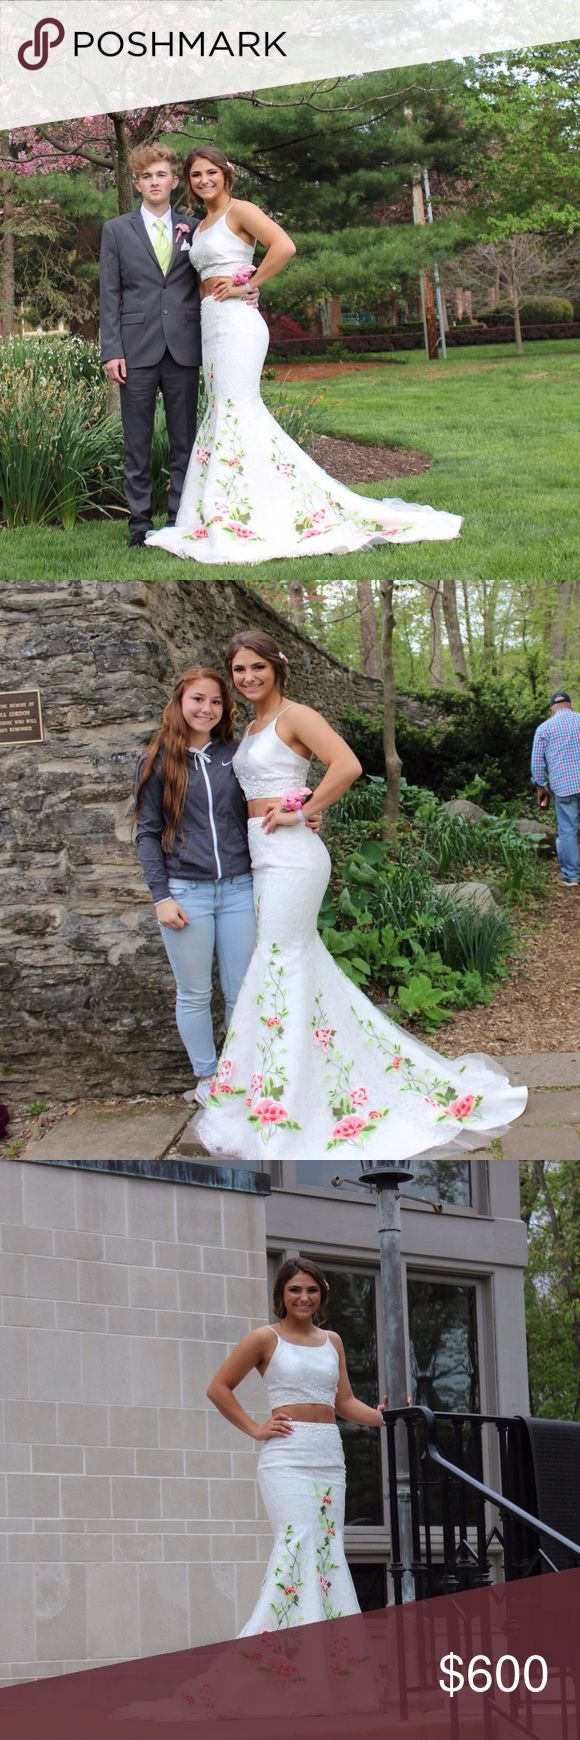 Sherri hill prom dress !!!! This is a Sherri hill, size 2 prom dress. It is a two piece mermaid!! Only worn once for prom!! Sherri Hill Dresses Prom